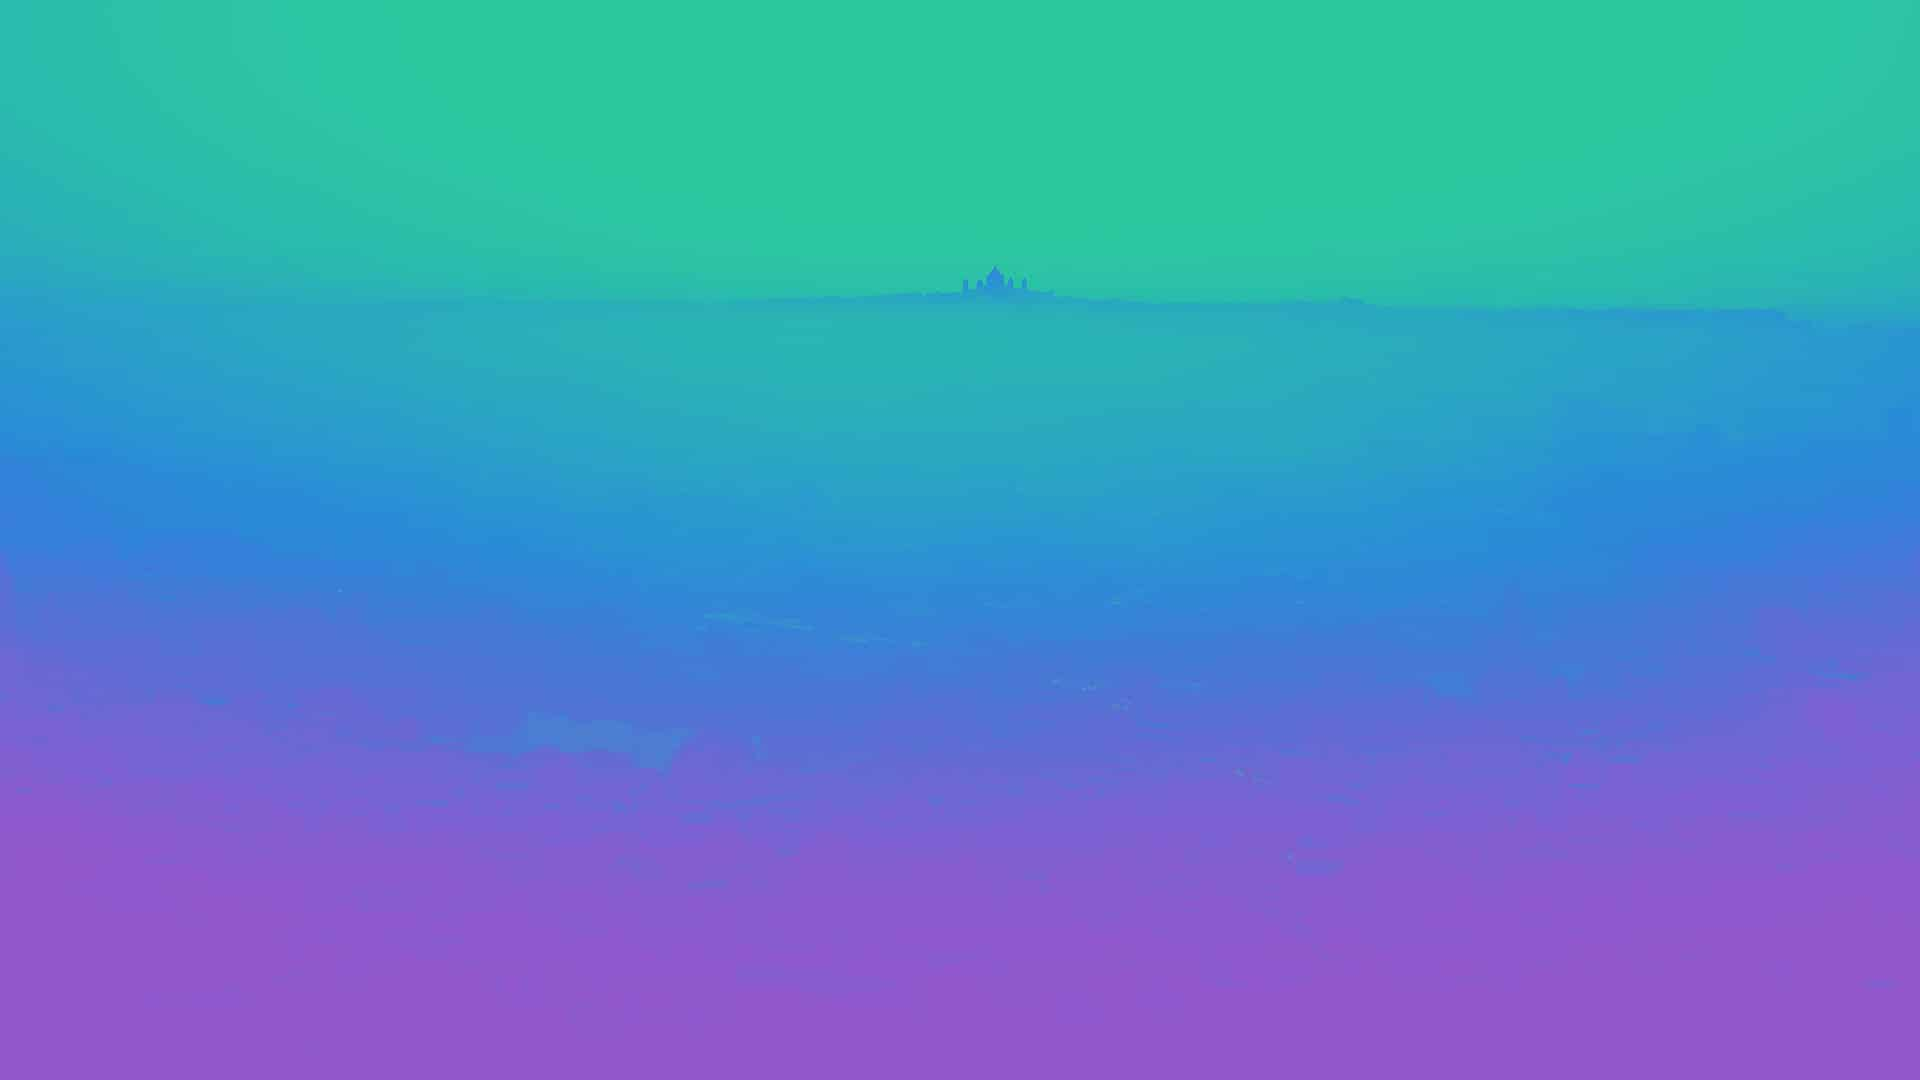 Abstract blue, green, and purple background